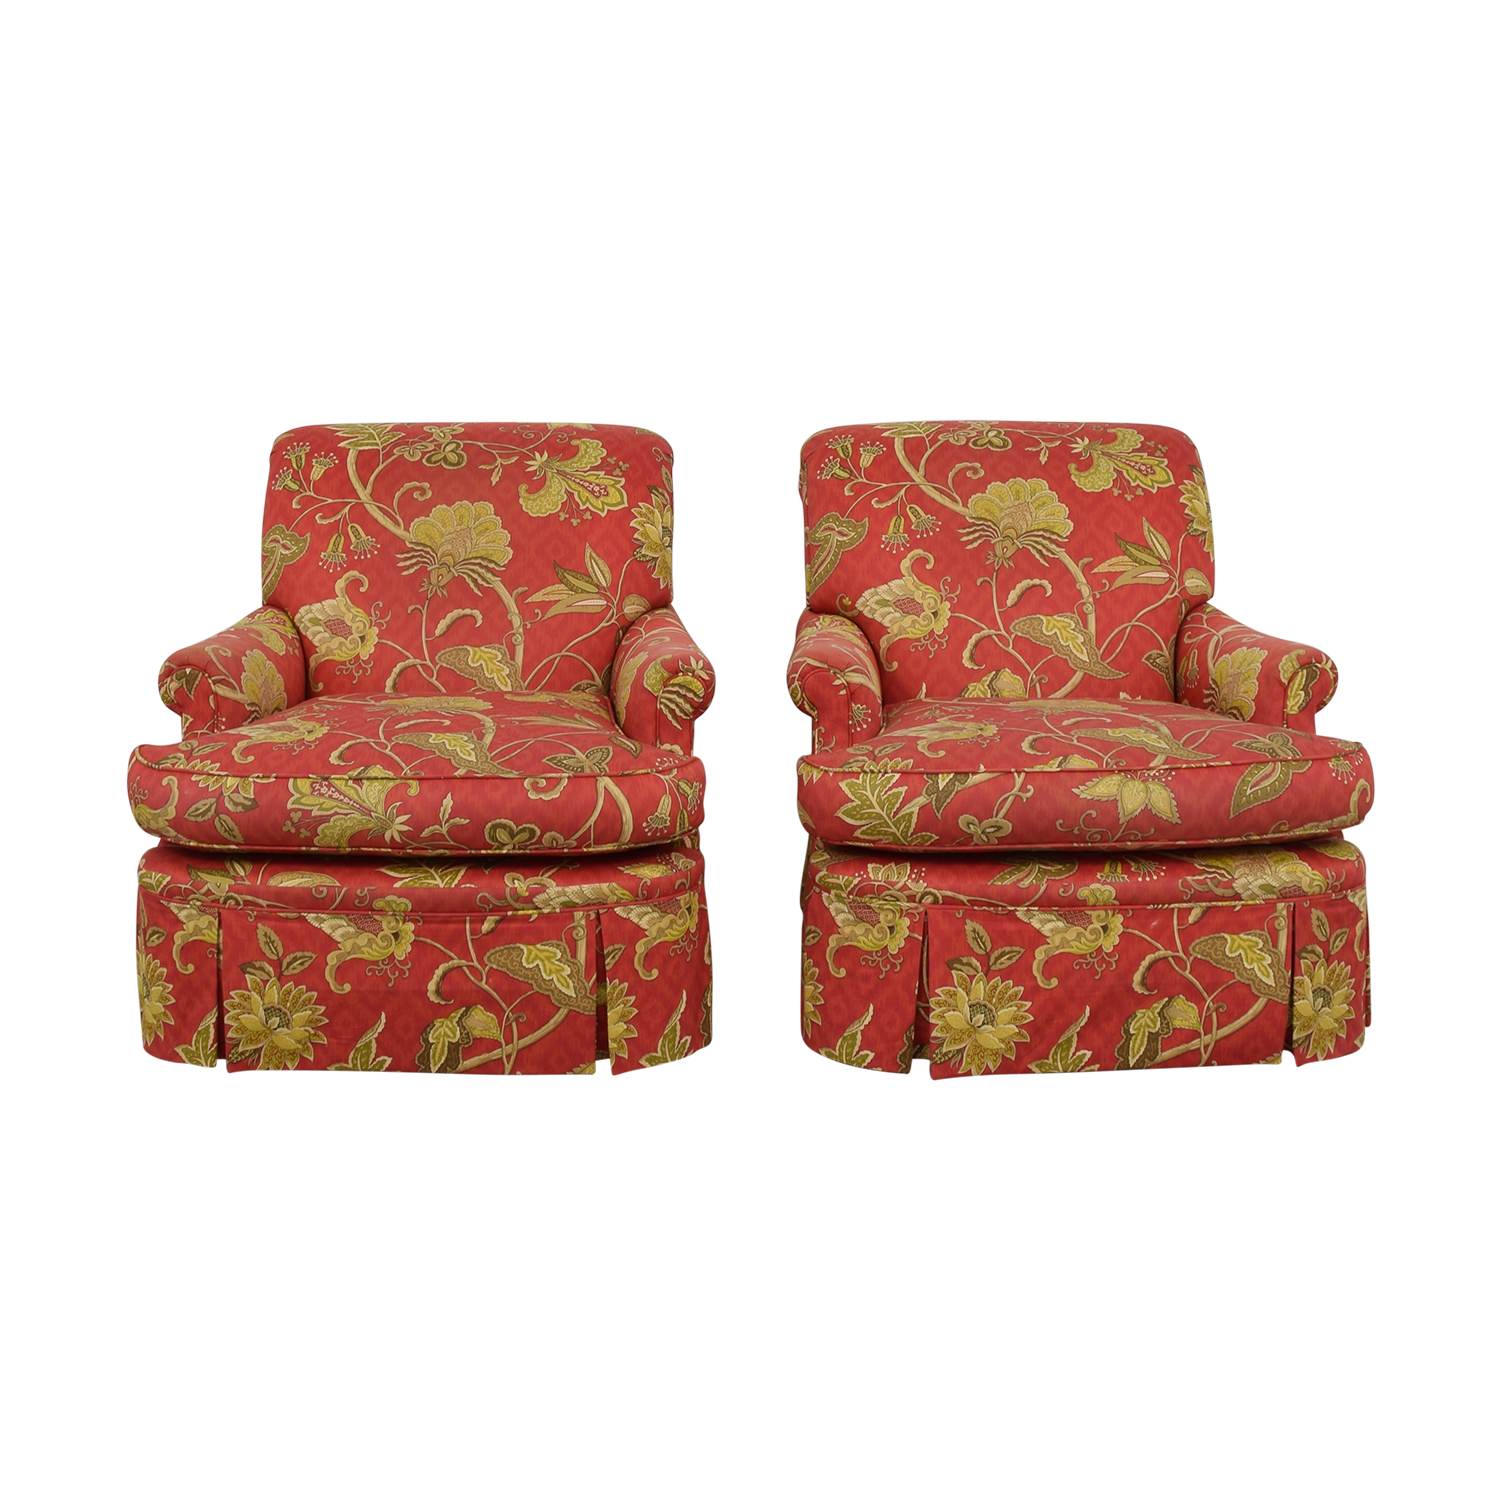 shop Red Printed Fabric Armchairs with Iman Fabric  Chairs